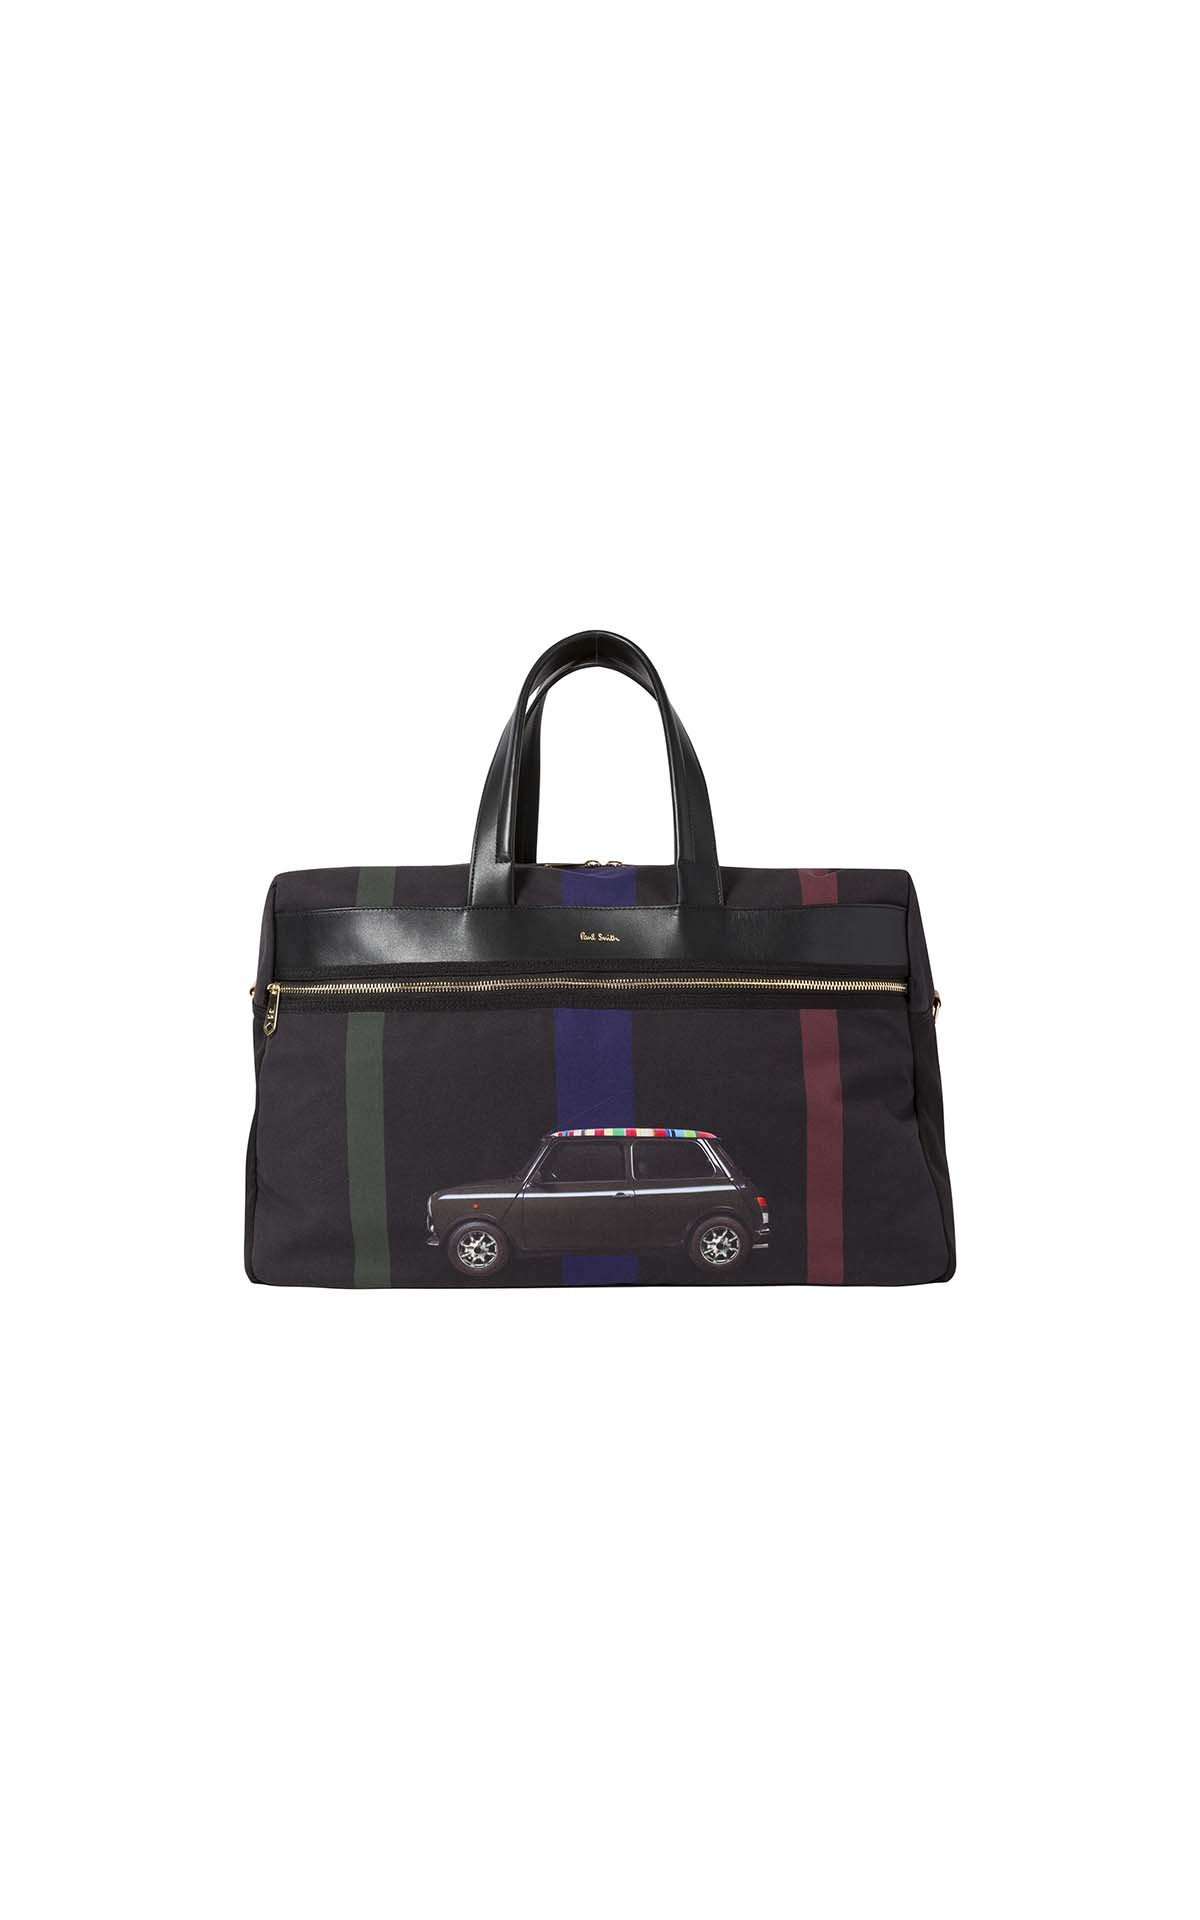 Paul Smith Men's Mini Bag at The Bicester Village Shopping Collection